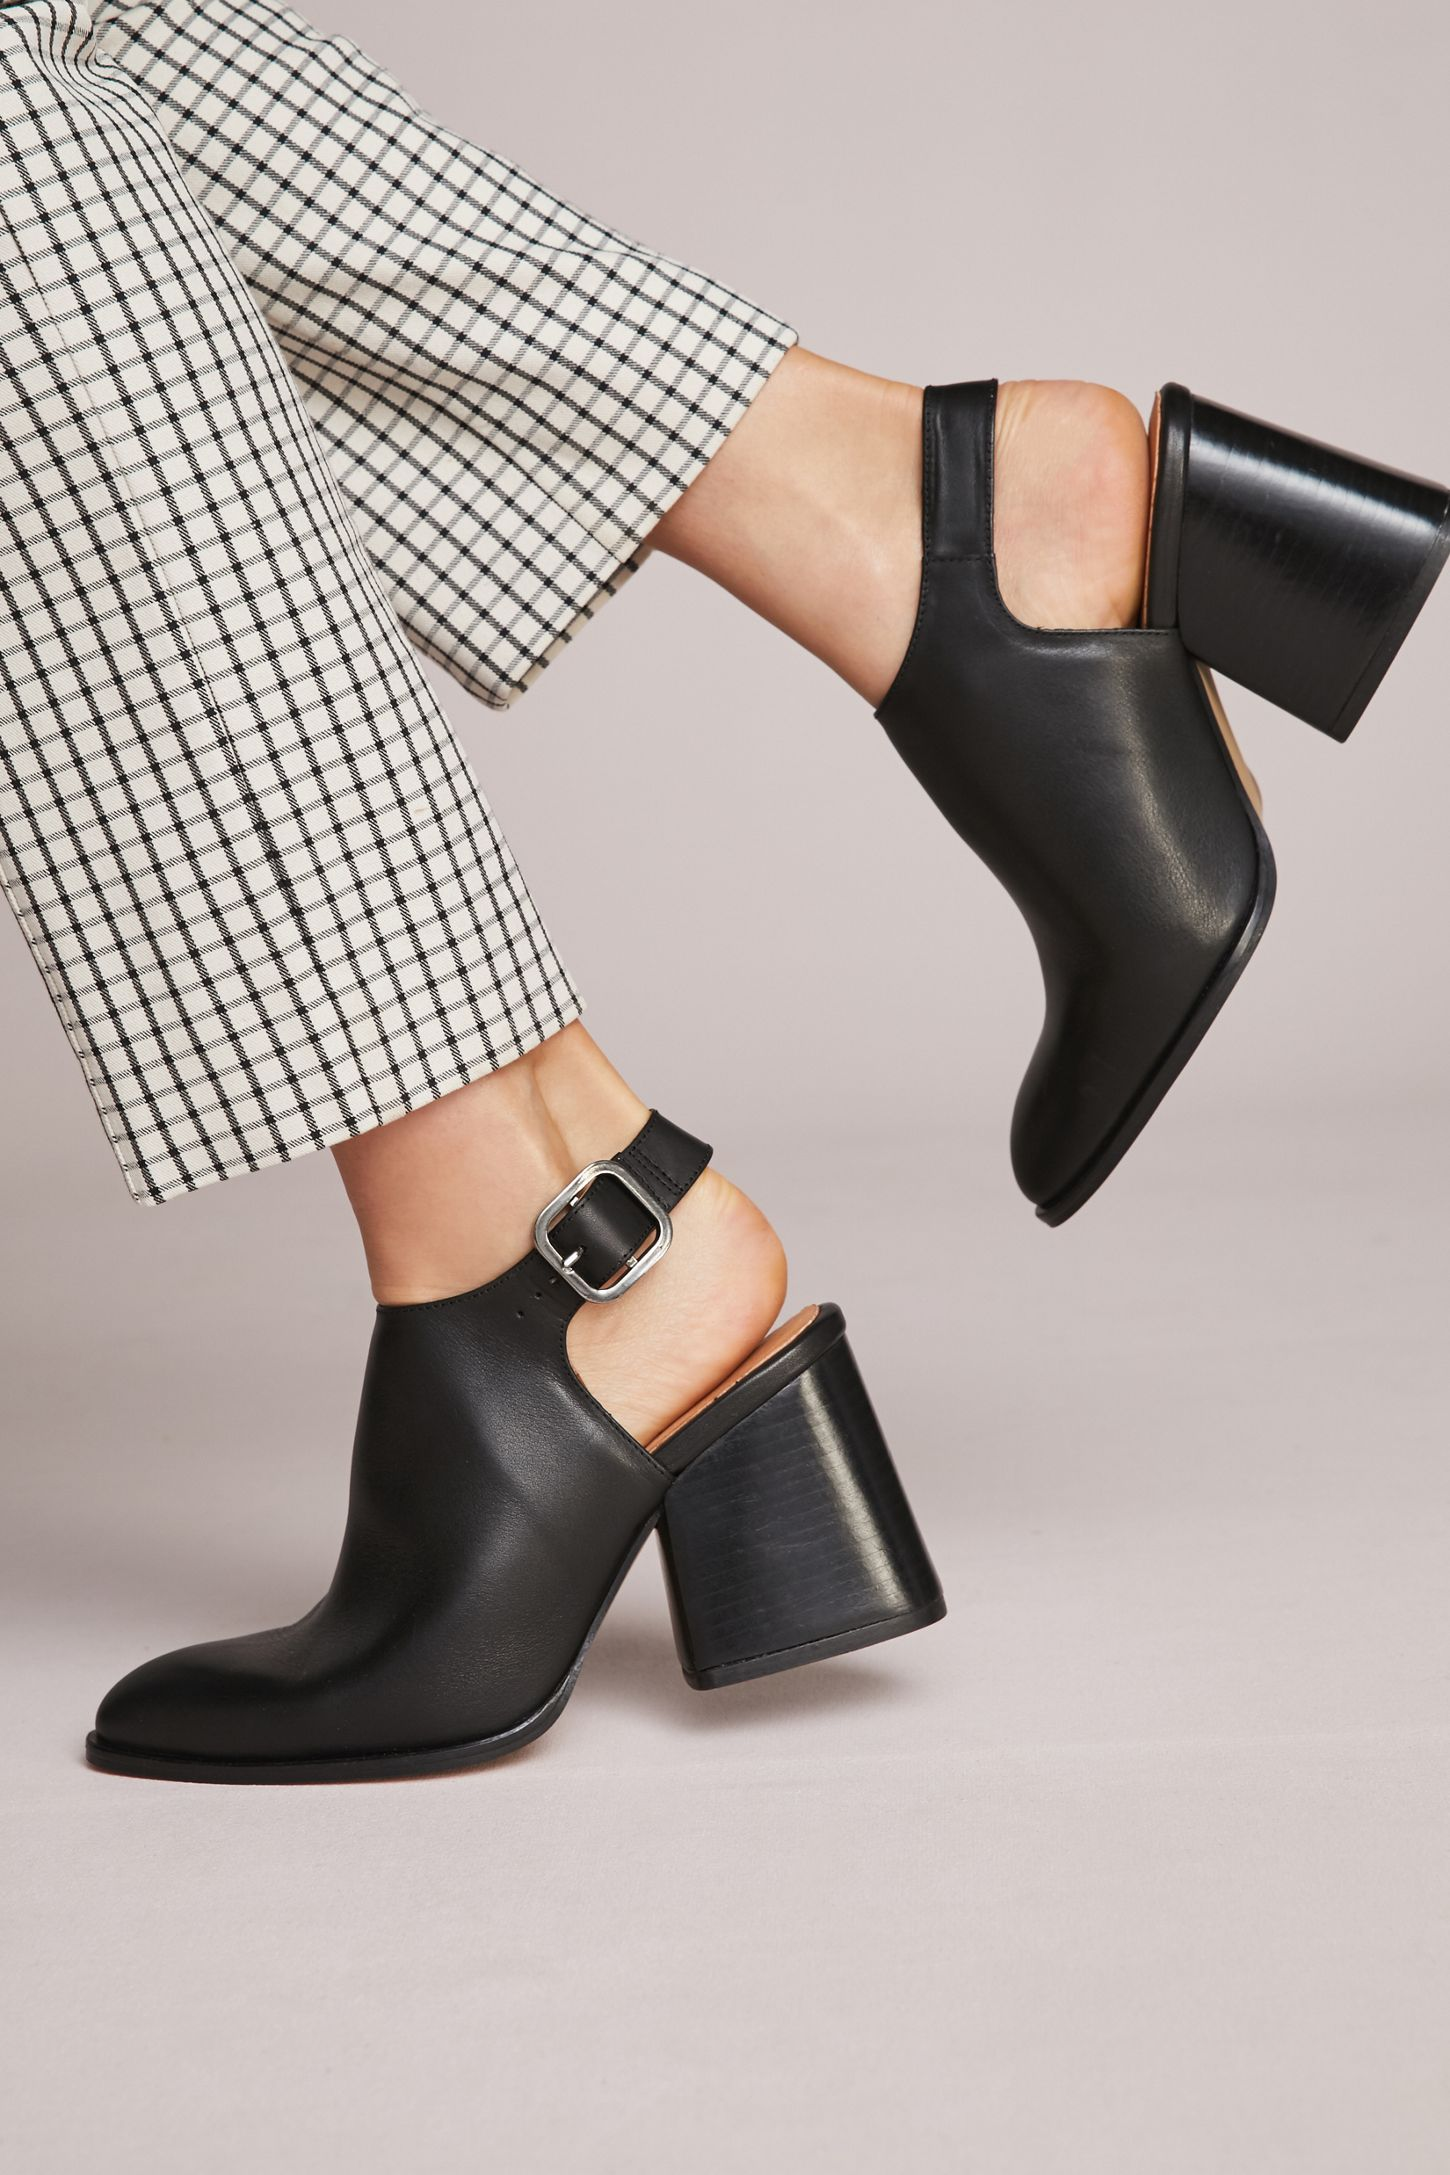 7bf38662d984 Gee Wawa Horky Ankle Boots